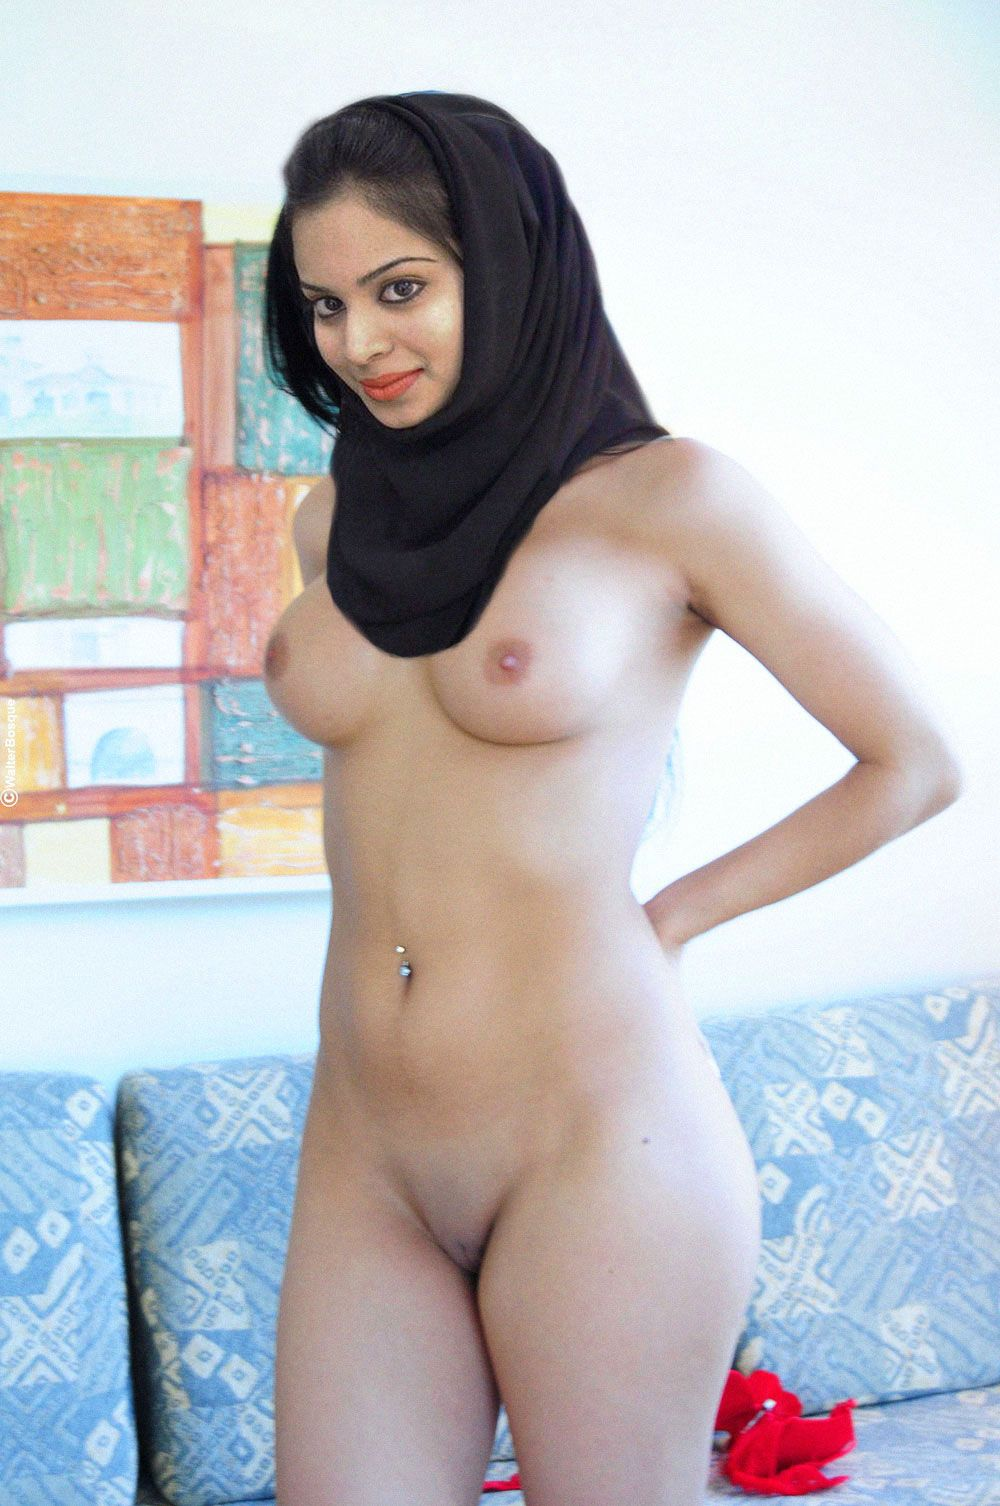 Brilliant idea Muslim girls fully naked site theme